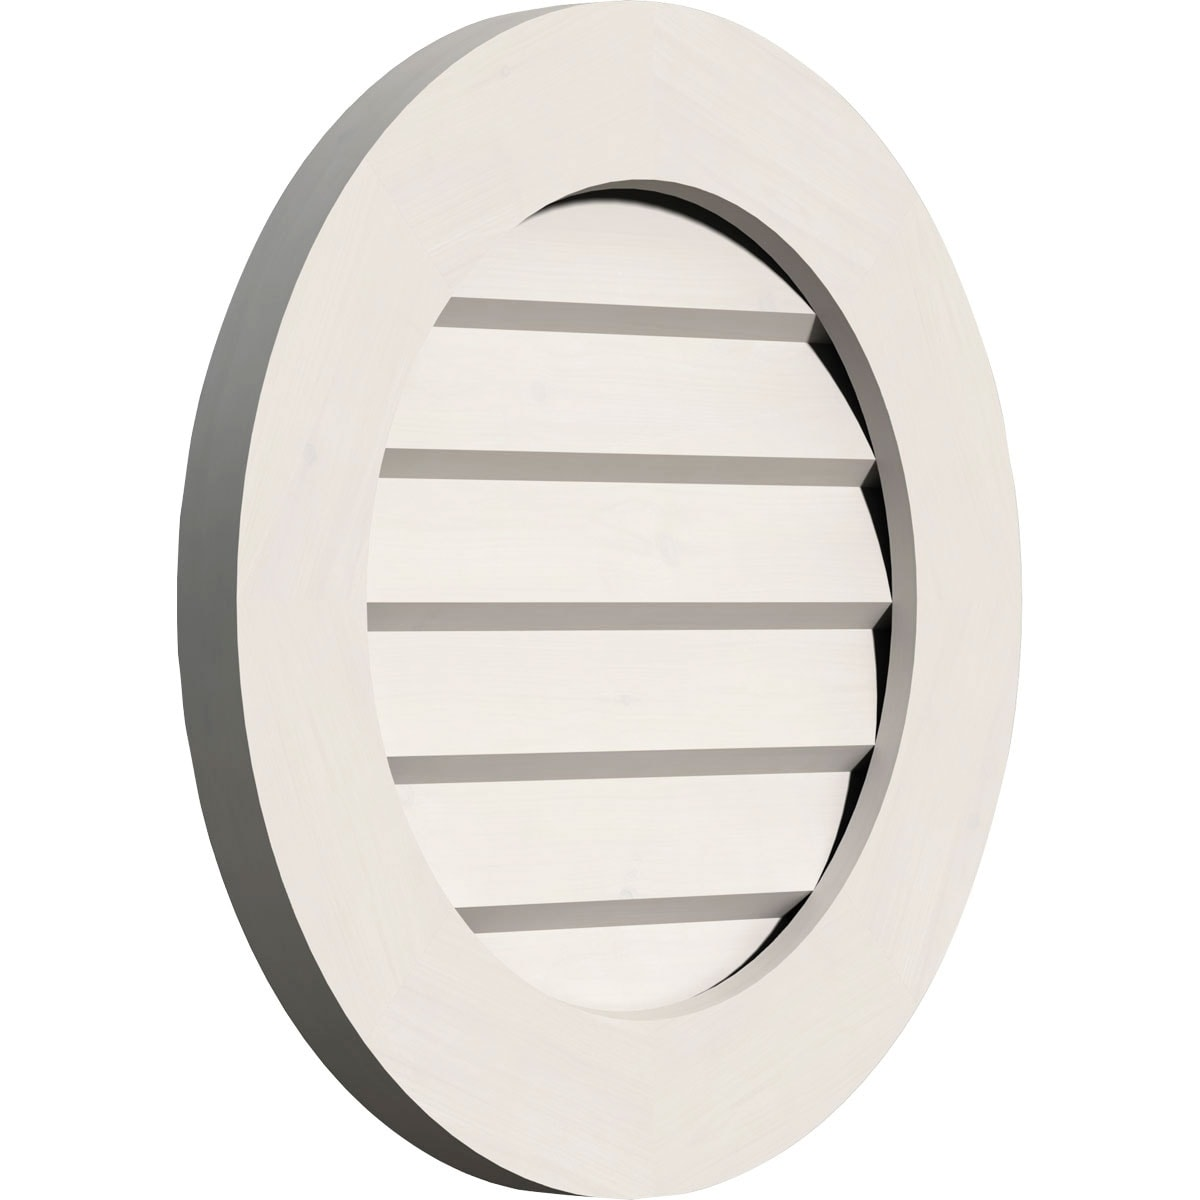 Round Gable Vent (Functional / 28W x 28H)